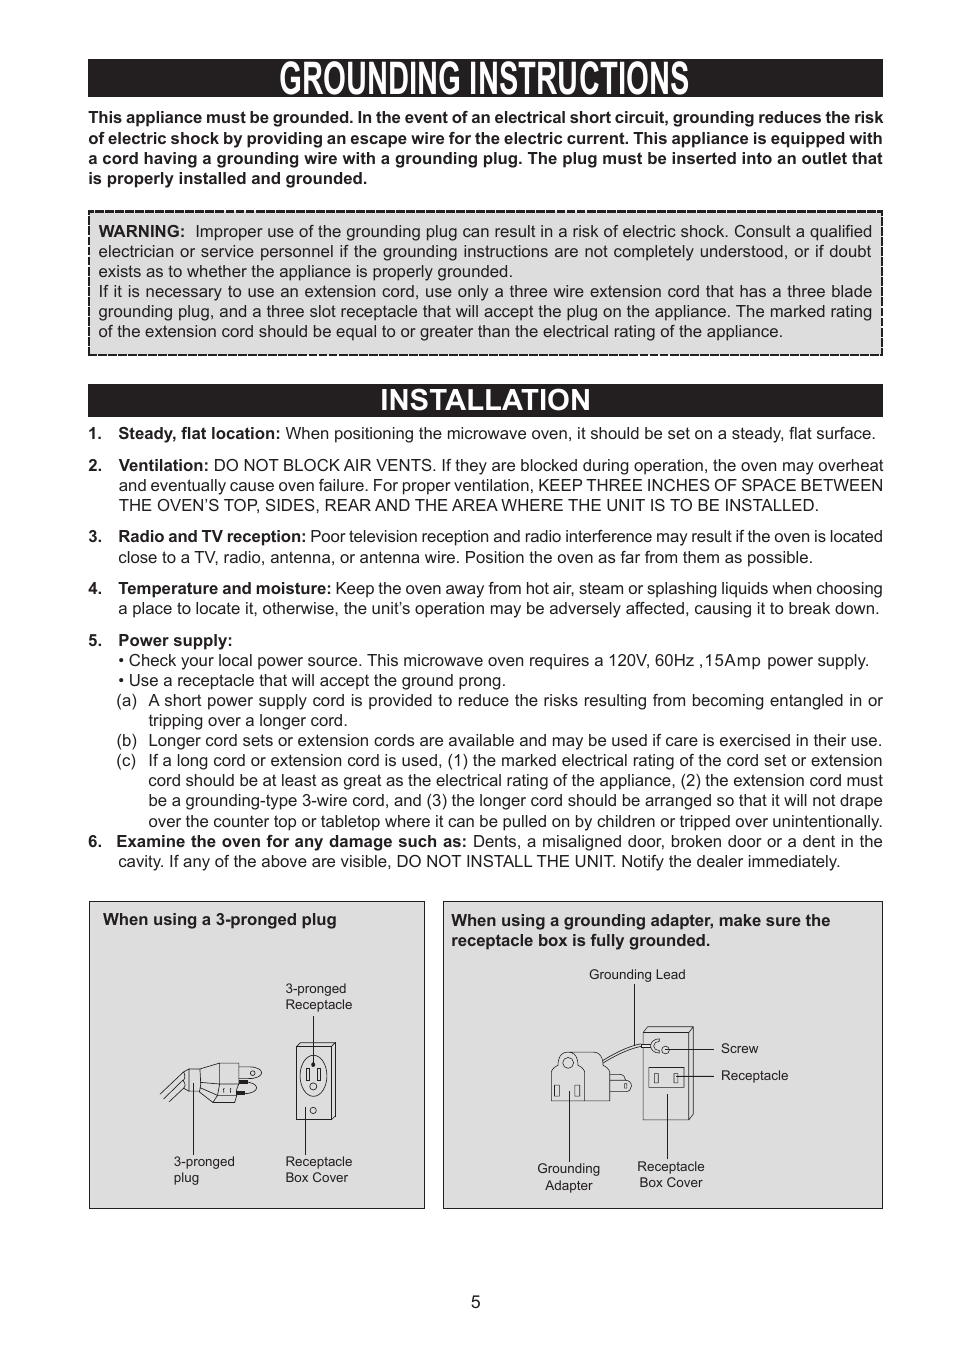 Mobile Radio Wiring And Grounding Manual Guide